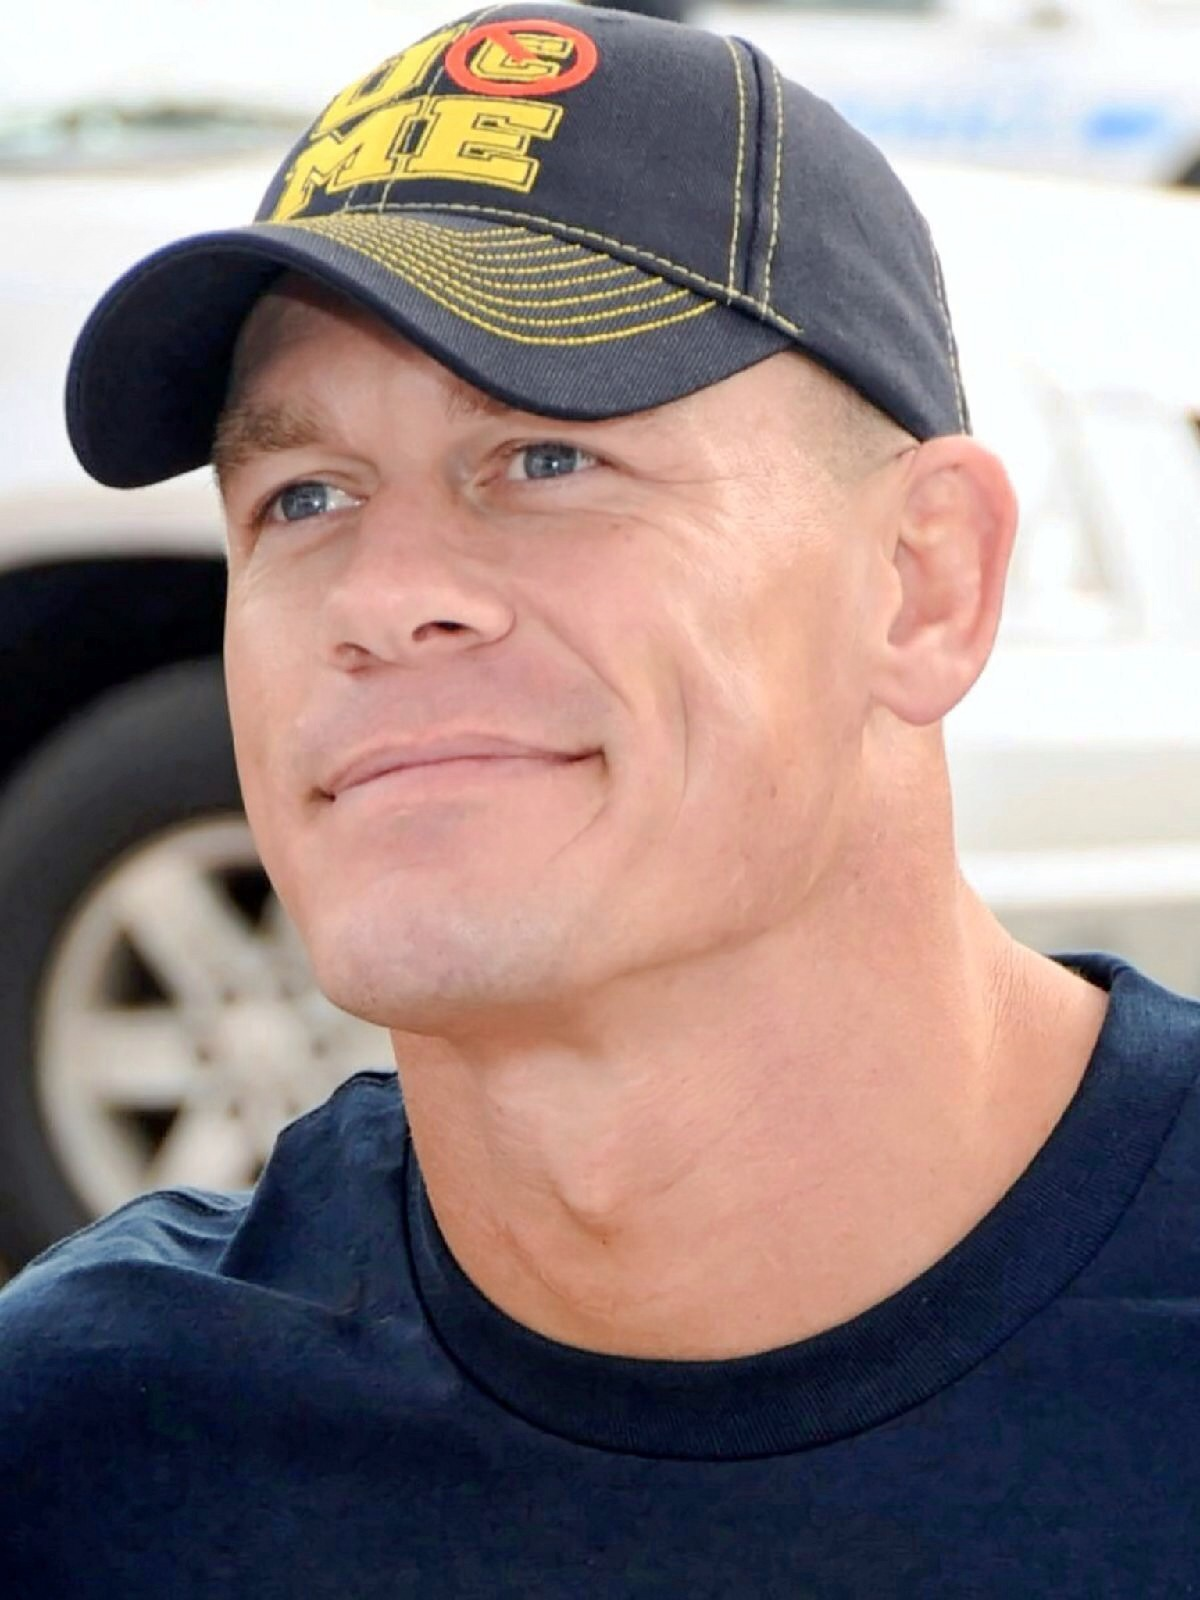 John Cena's Ybor PSA is Now an Emmy Nominated Commercial